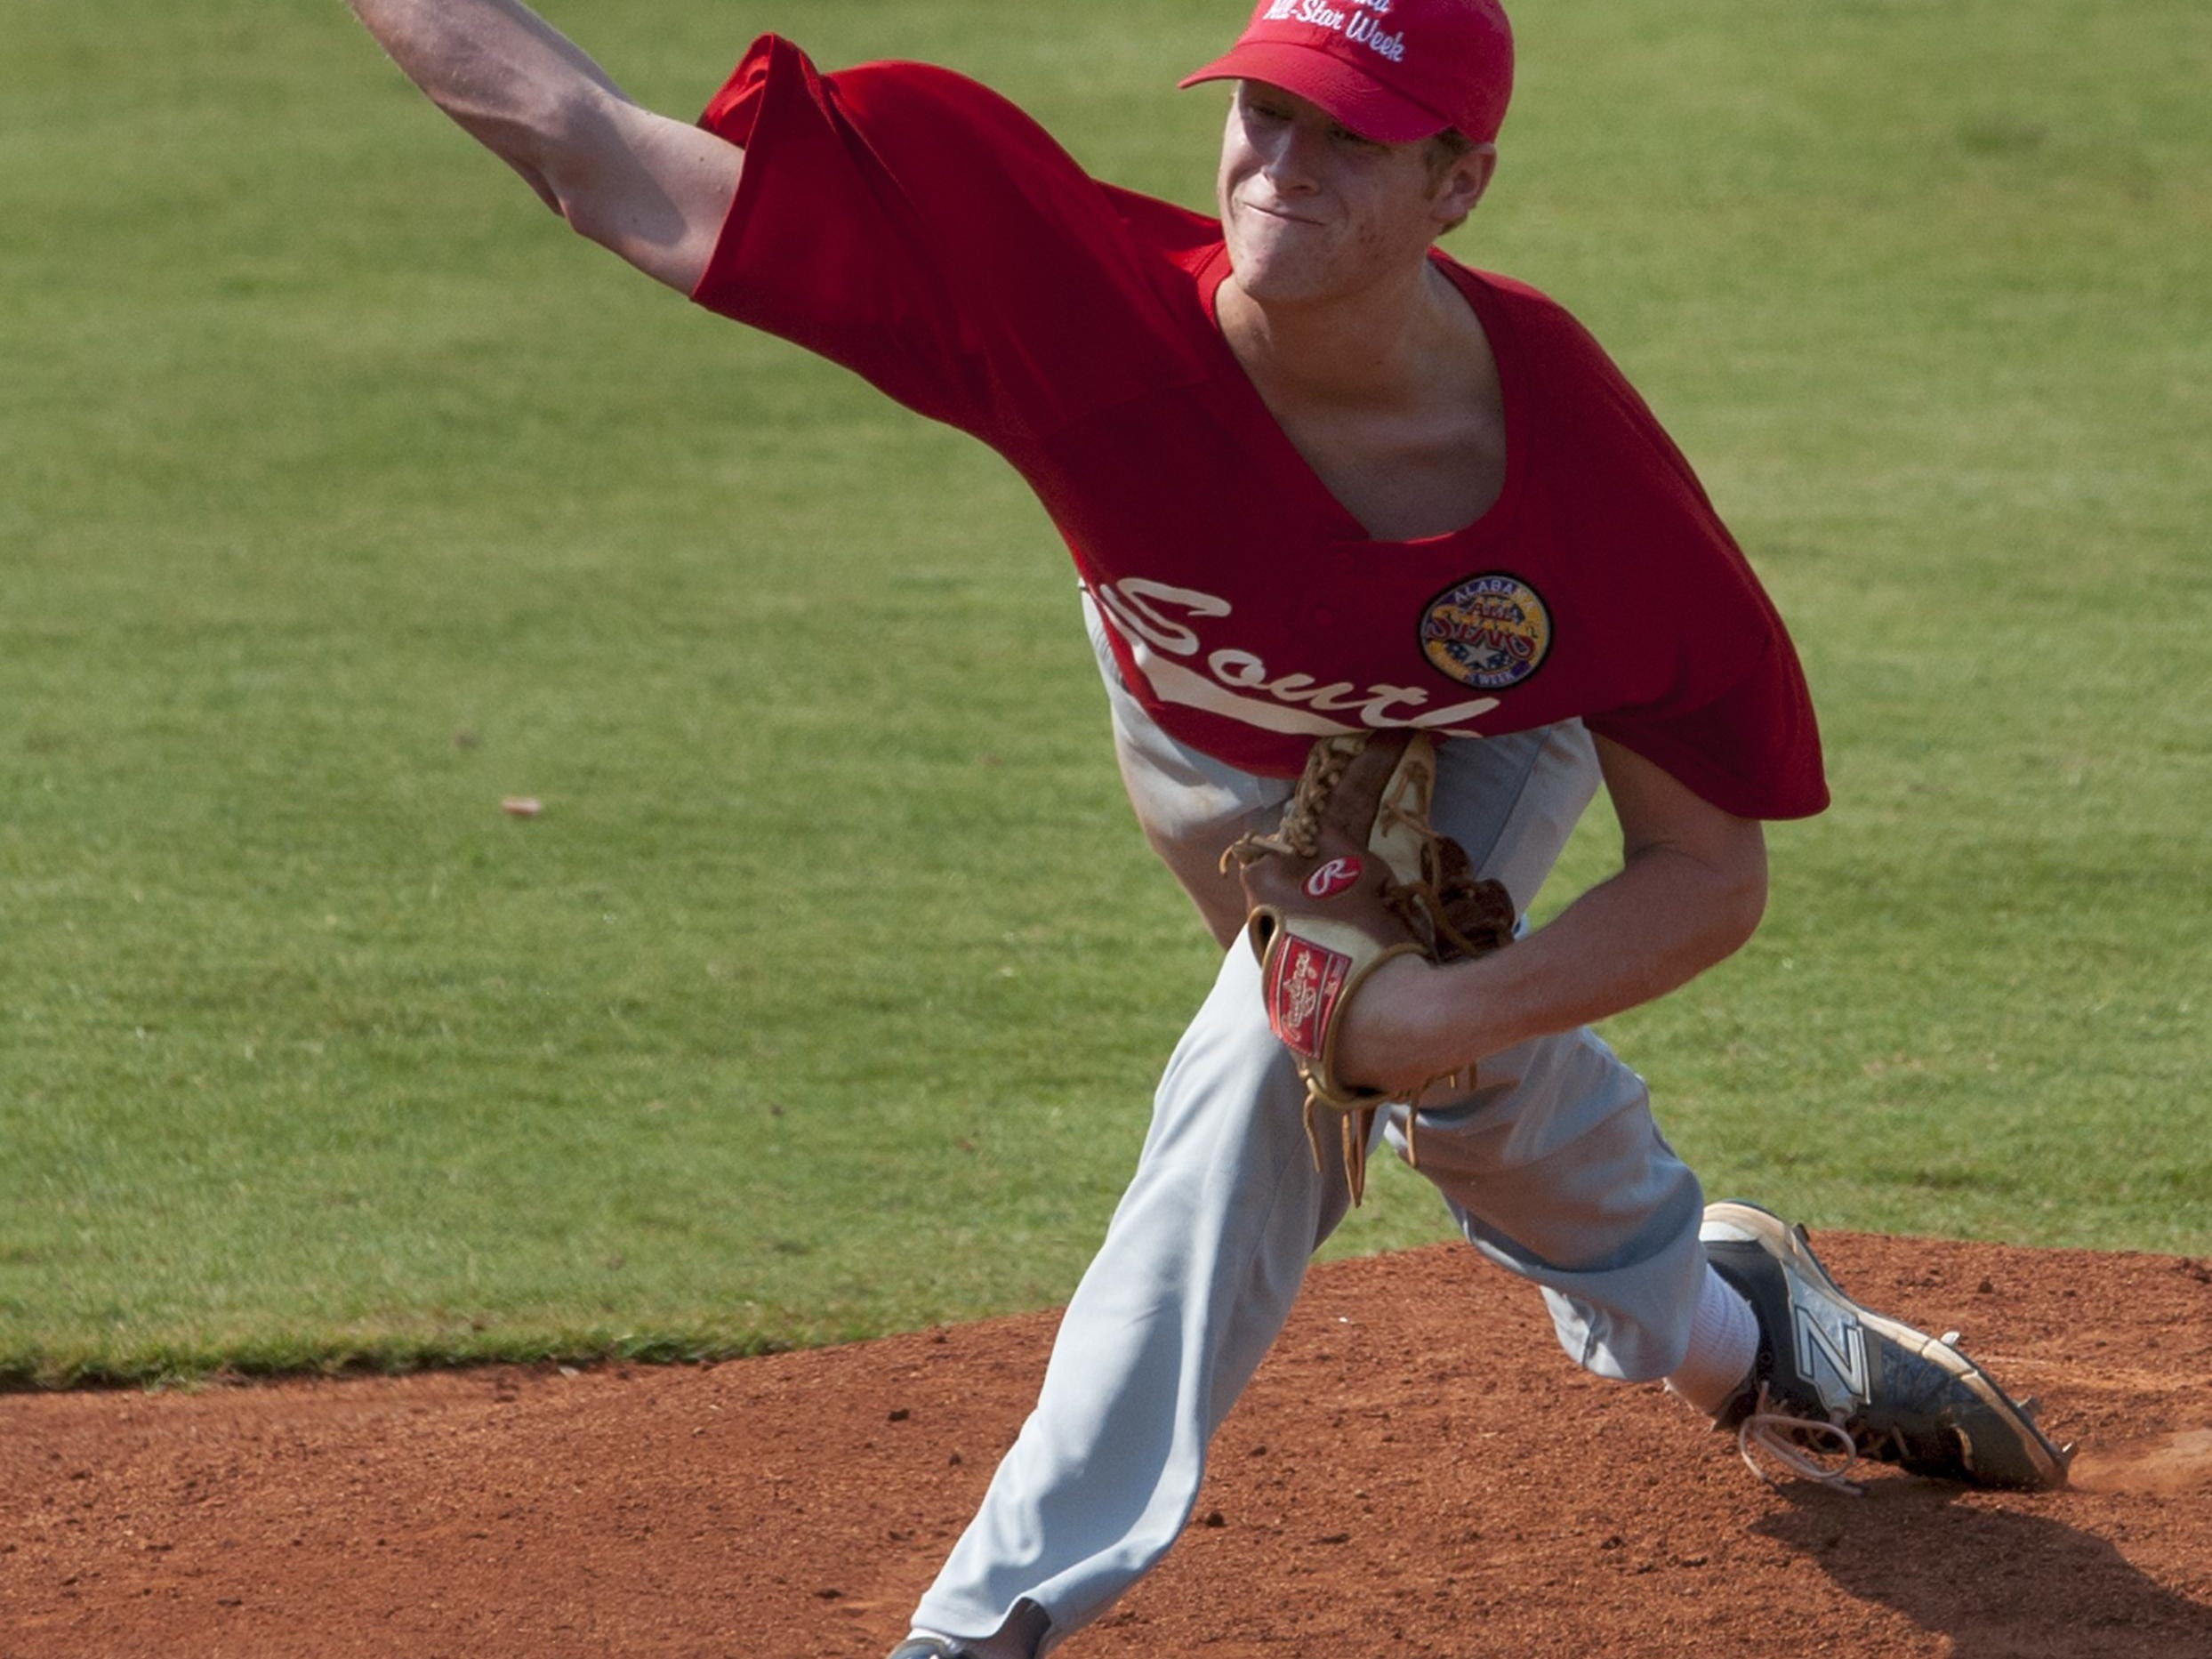 St. James pitcher Davis Daniel throws for the South team in game one of the AHSAA All-Star Sports Week at Riverwalk Stadium Montgomery, Ala. on Tuesday July 21, 2015.